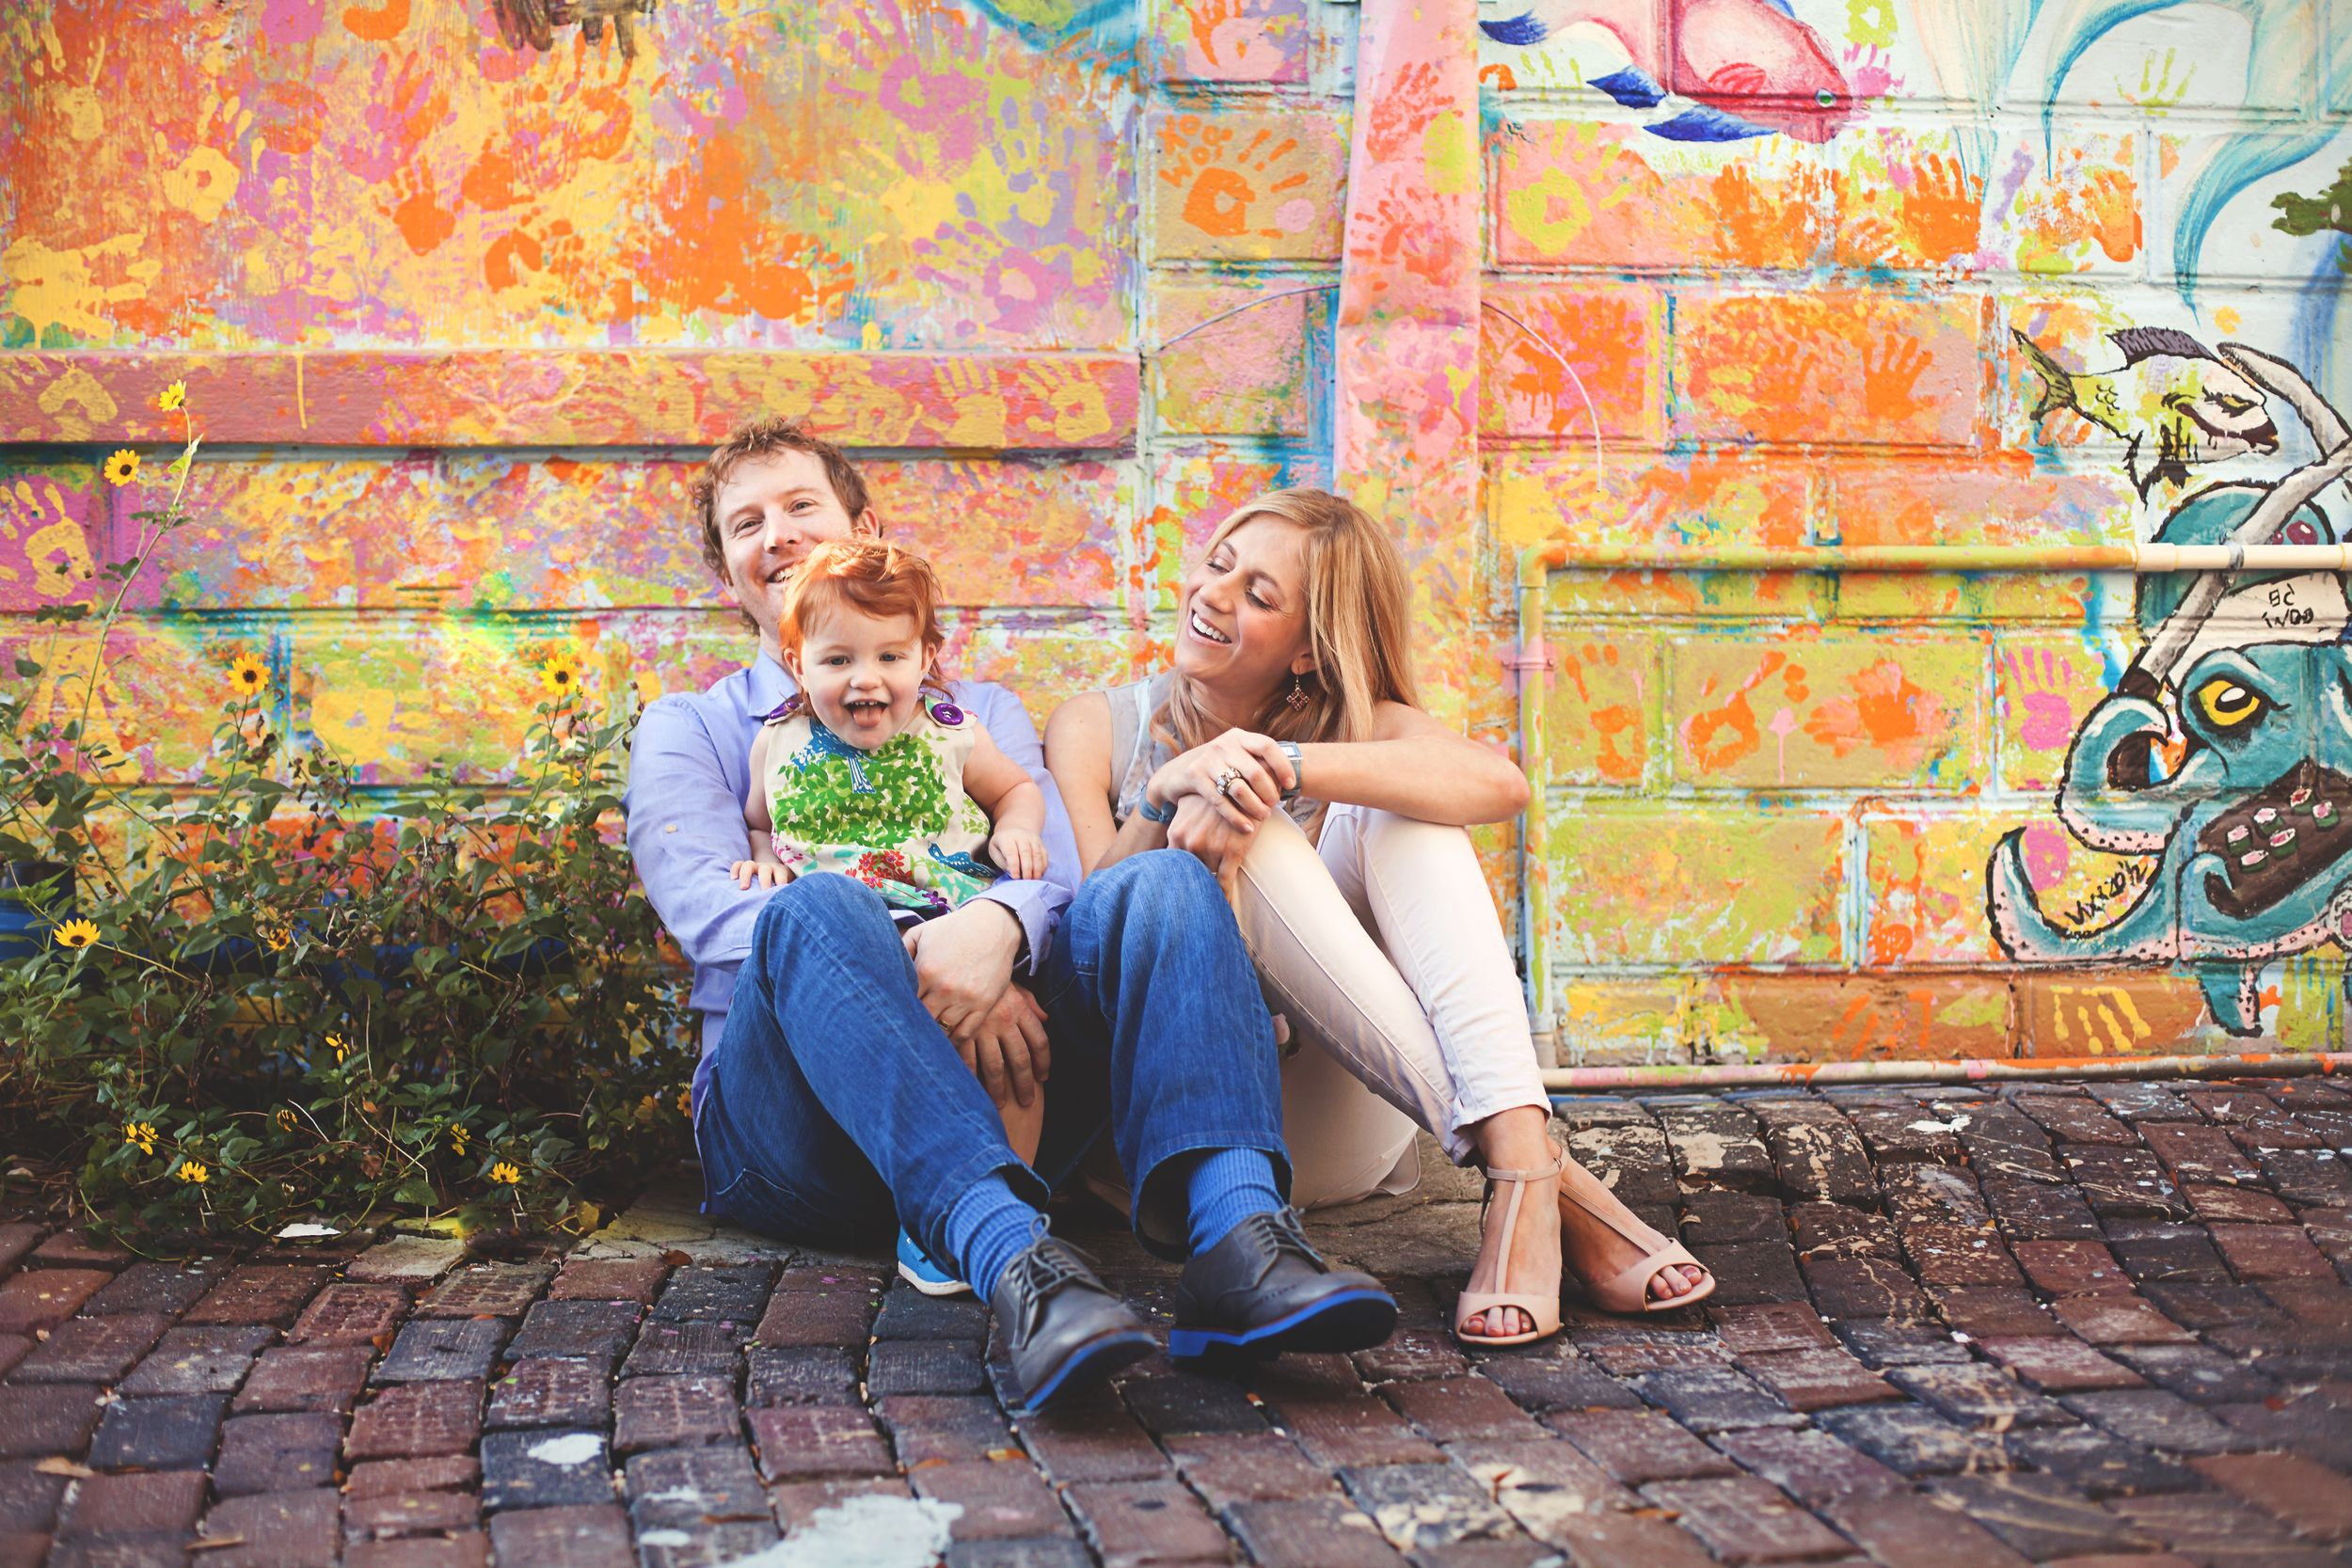 St. Pete family photos in front of colorful mural